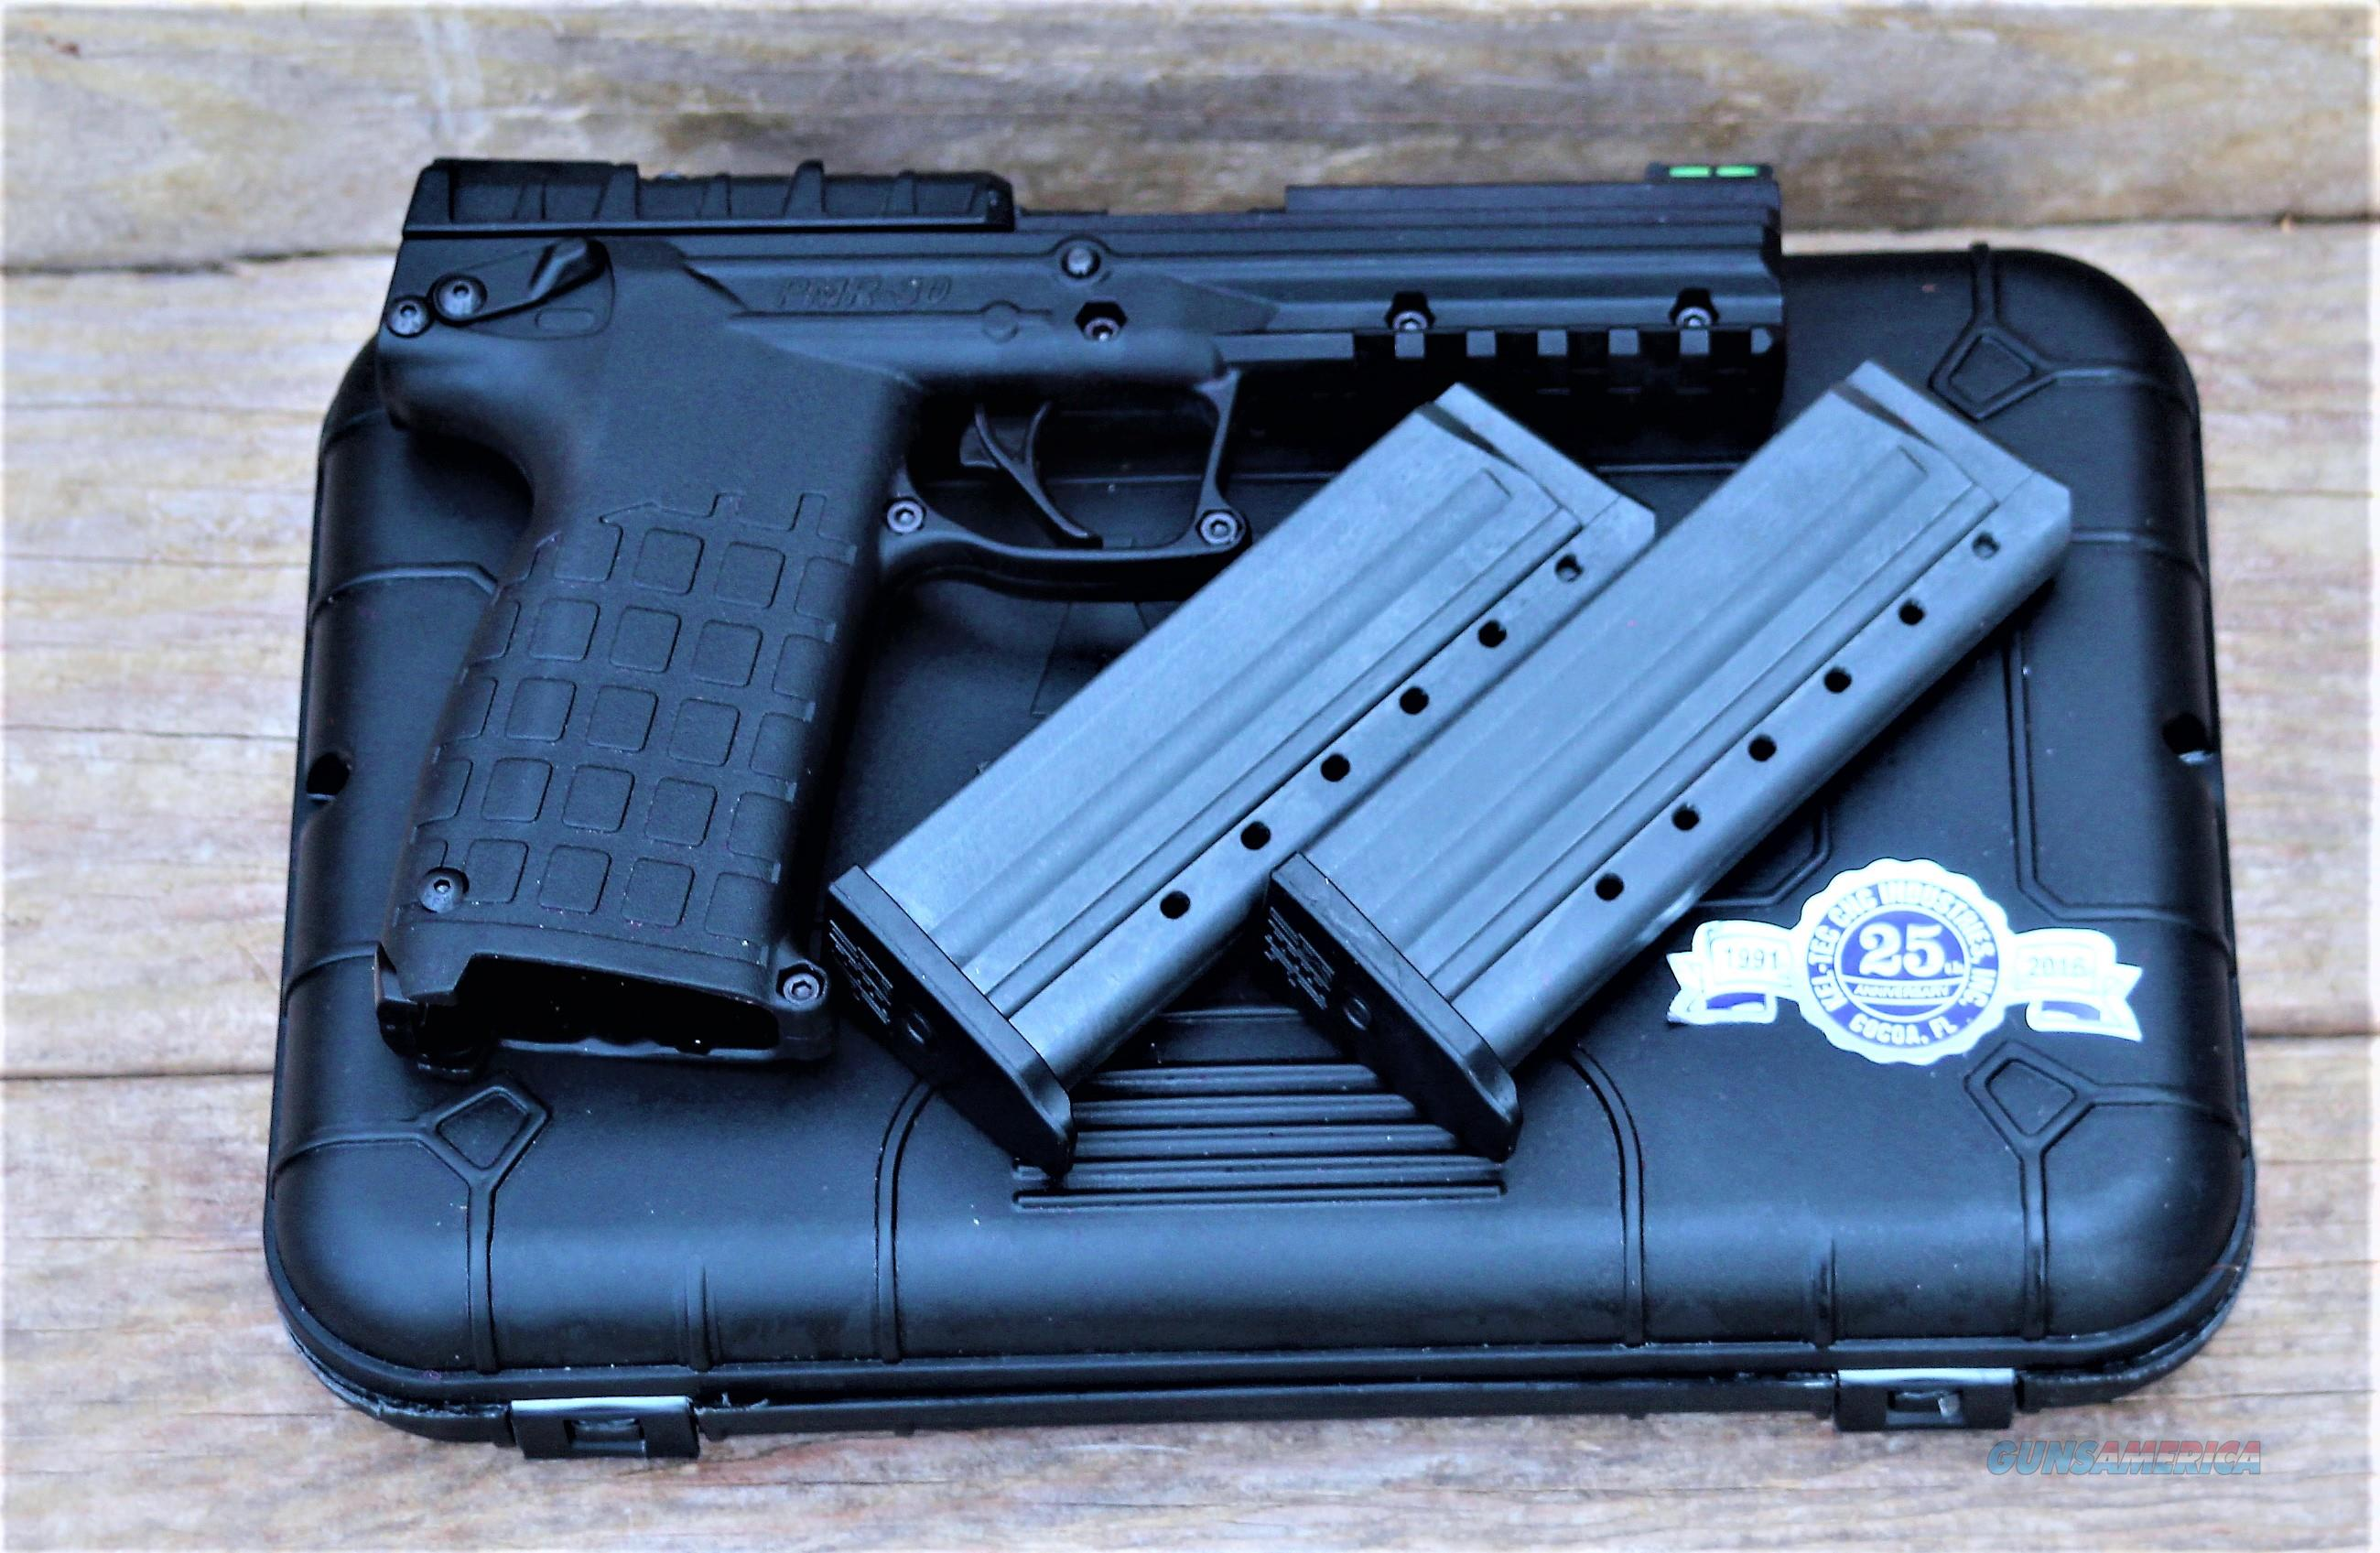 Sorry no sell in most Ban states ask your Local FFL about Your states Laws  KEL-TEC Black Polymer American Innovation! 30 SHOT Rimfire Higher velocity Around 2,000 feet per Second Can kill Larger  Game steel slide & barrel PMR-30 EZ PAY $33  Guns > Pistols > Kel-Tec Pistols > Pocket Pistol Type